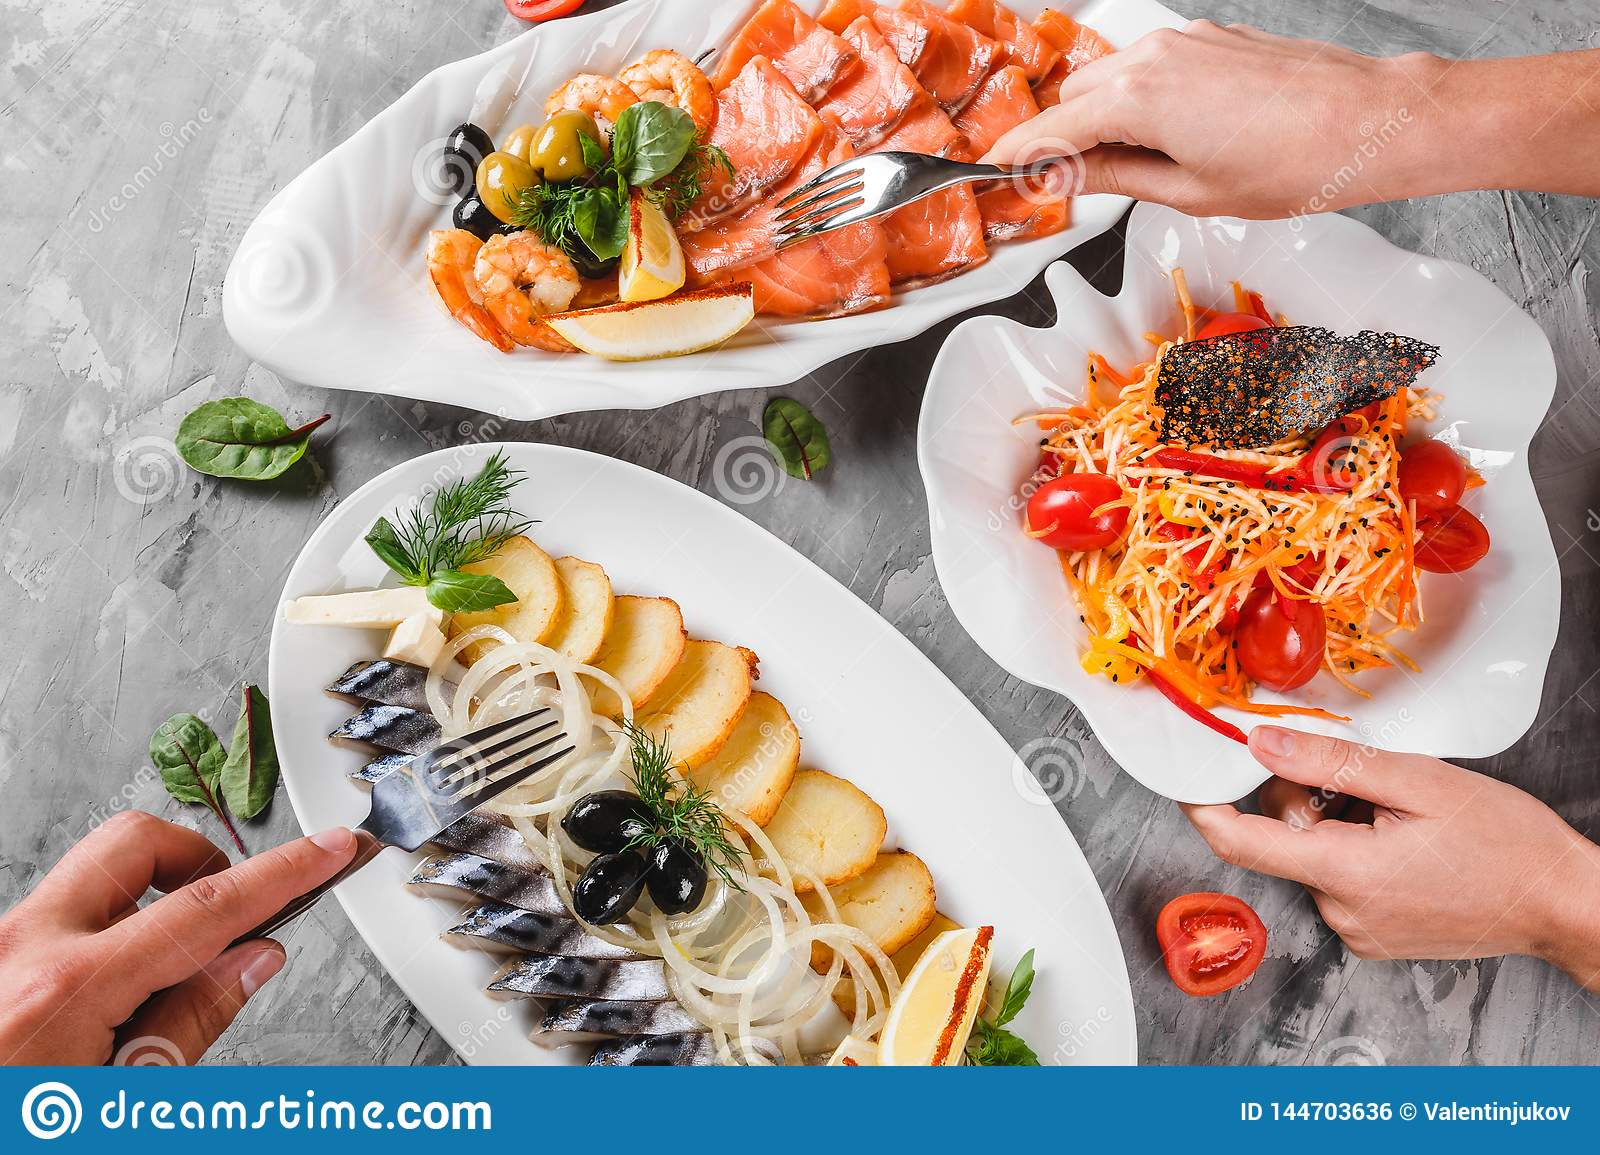 Different Food With Seafood Platter With Smoked Mackerel Slice Fried Potatoes Salmon Slice Shrimp And Vegetable Salad On Table Stock Photo Image Of Healthy Dining 144703636